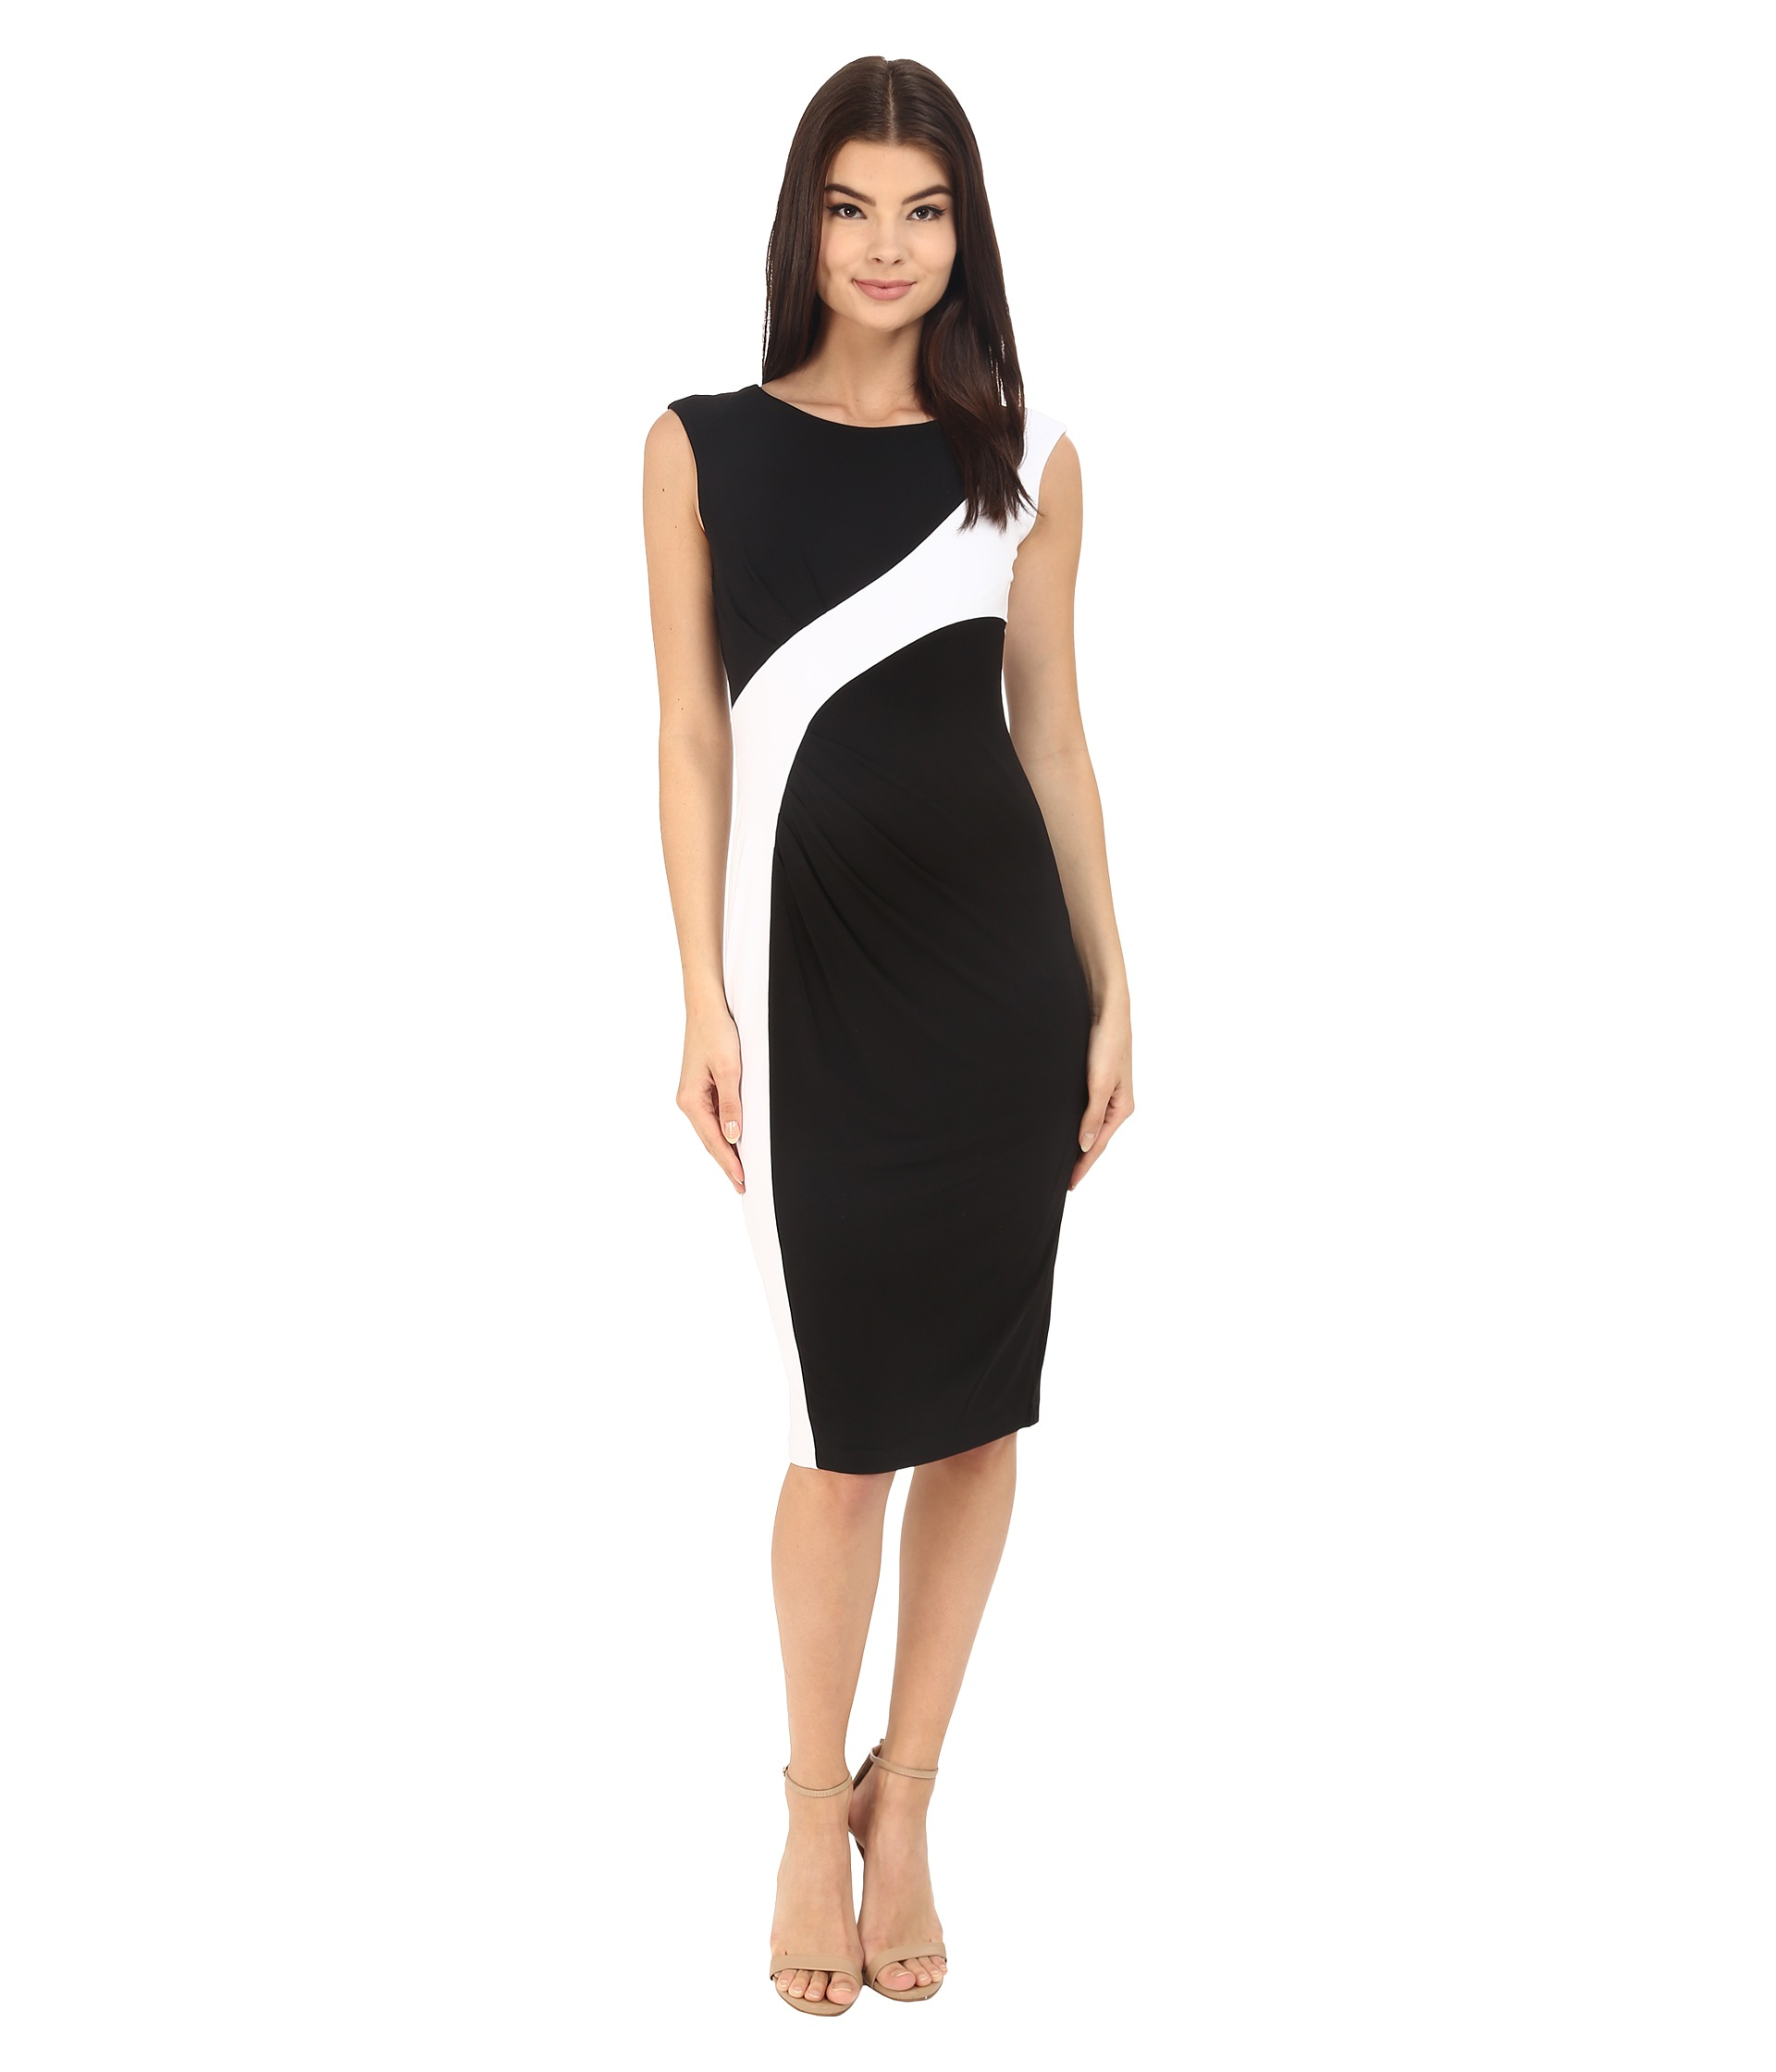 Calvin Klein Color Block Cap Sleeve Dress CD6A1V8U BlackWhite